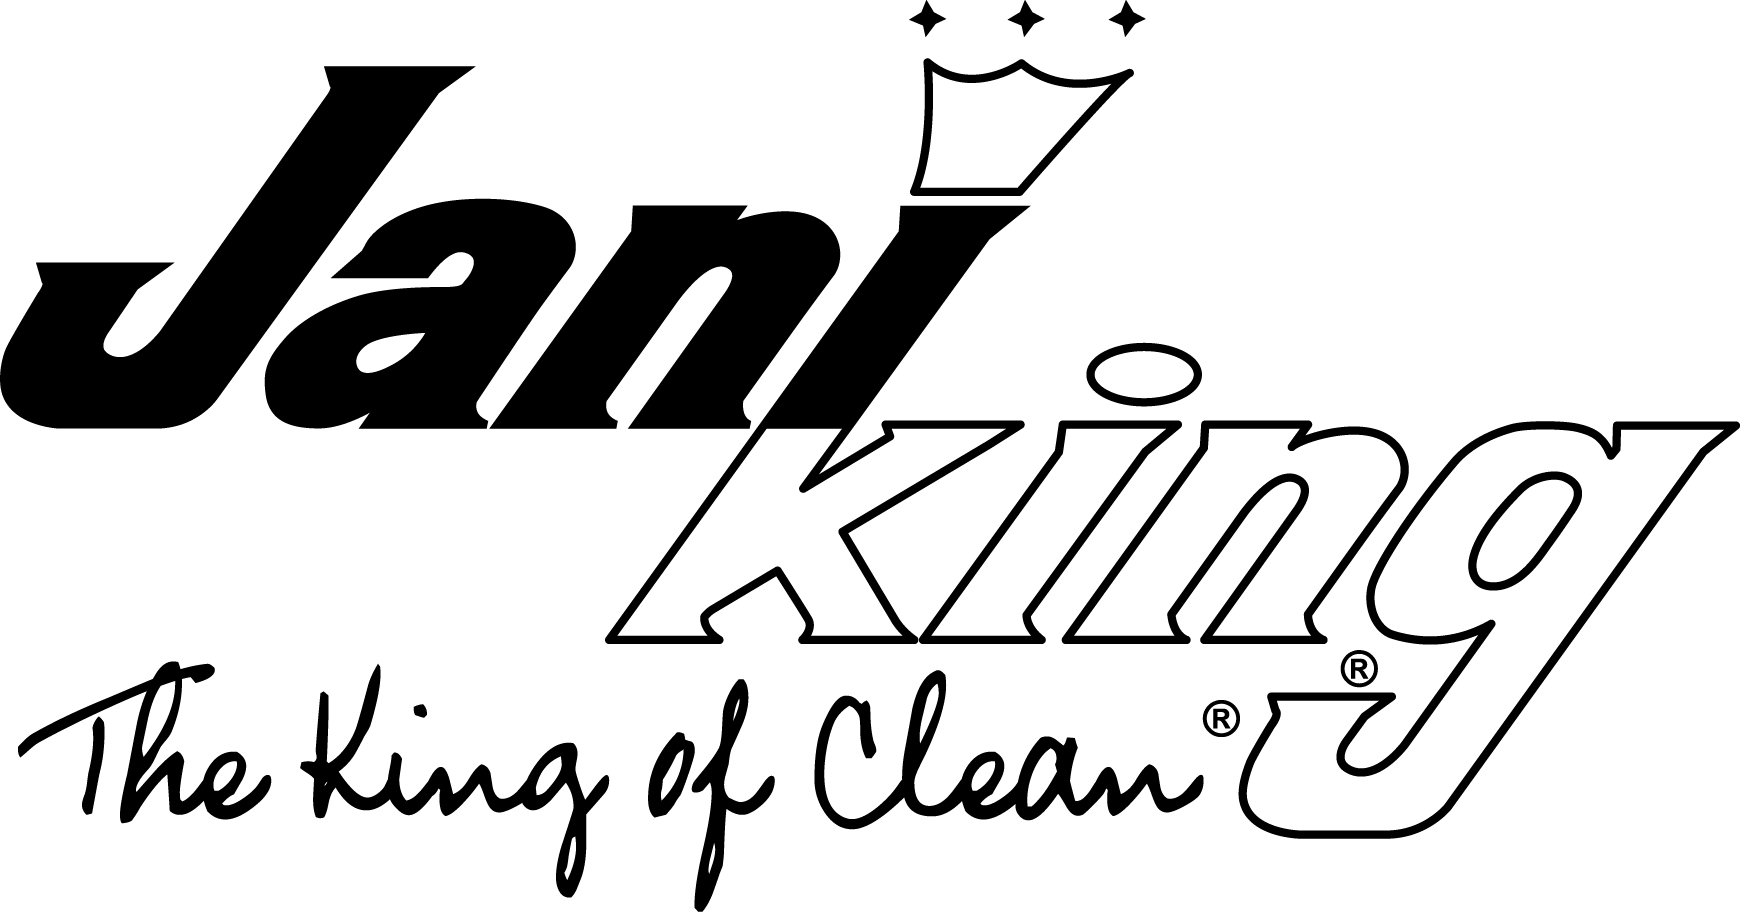 Jani-King $850 sponsorship